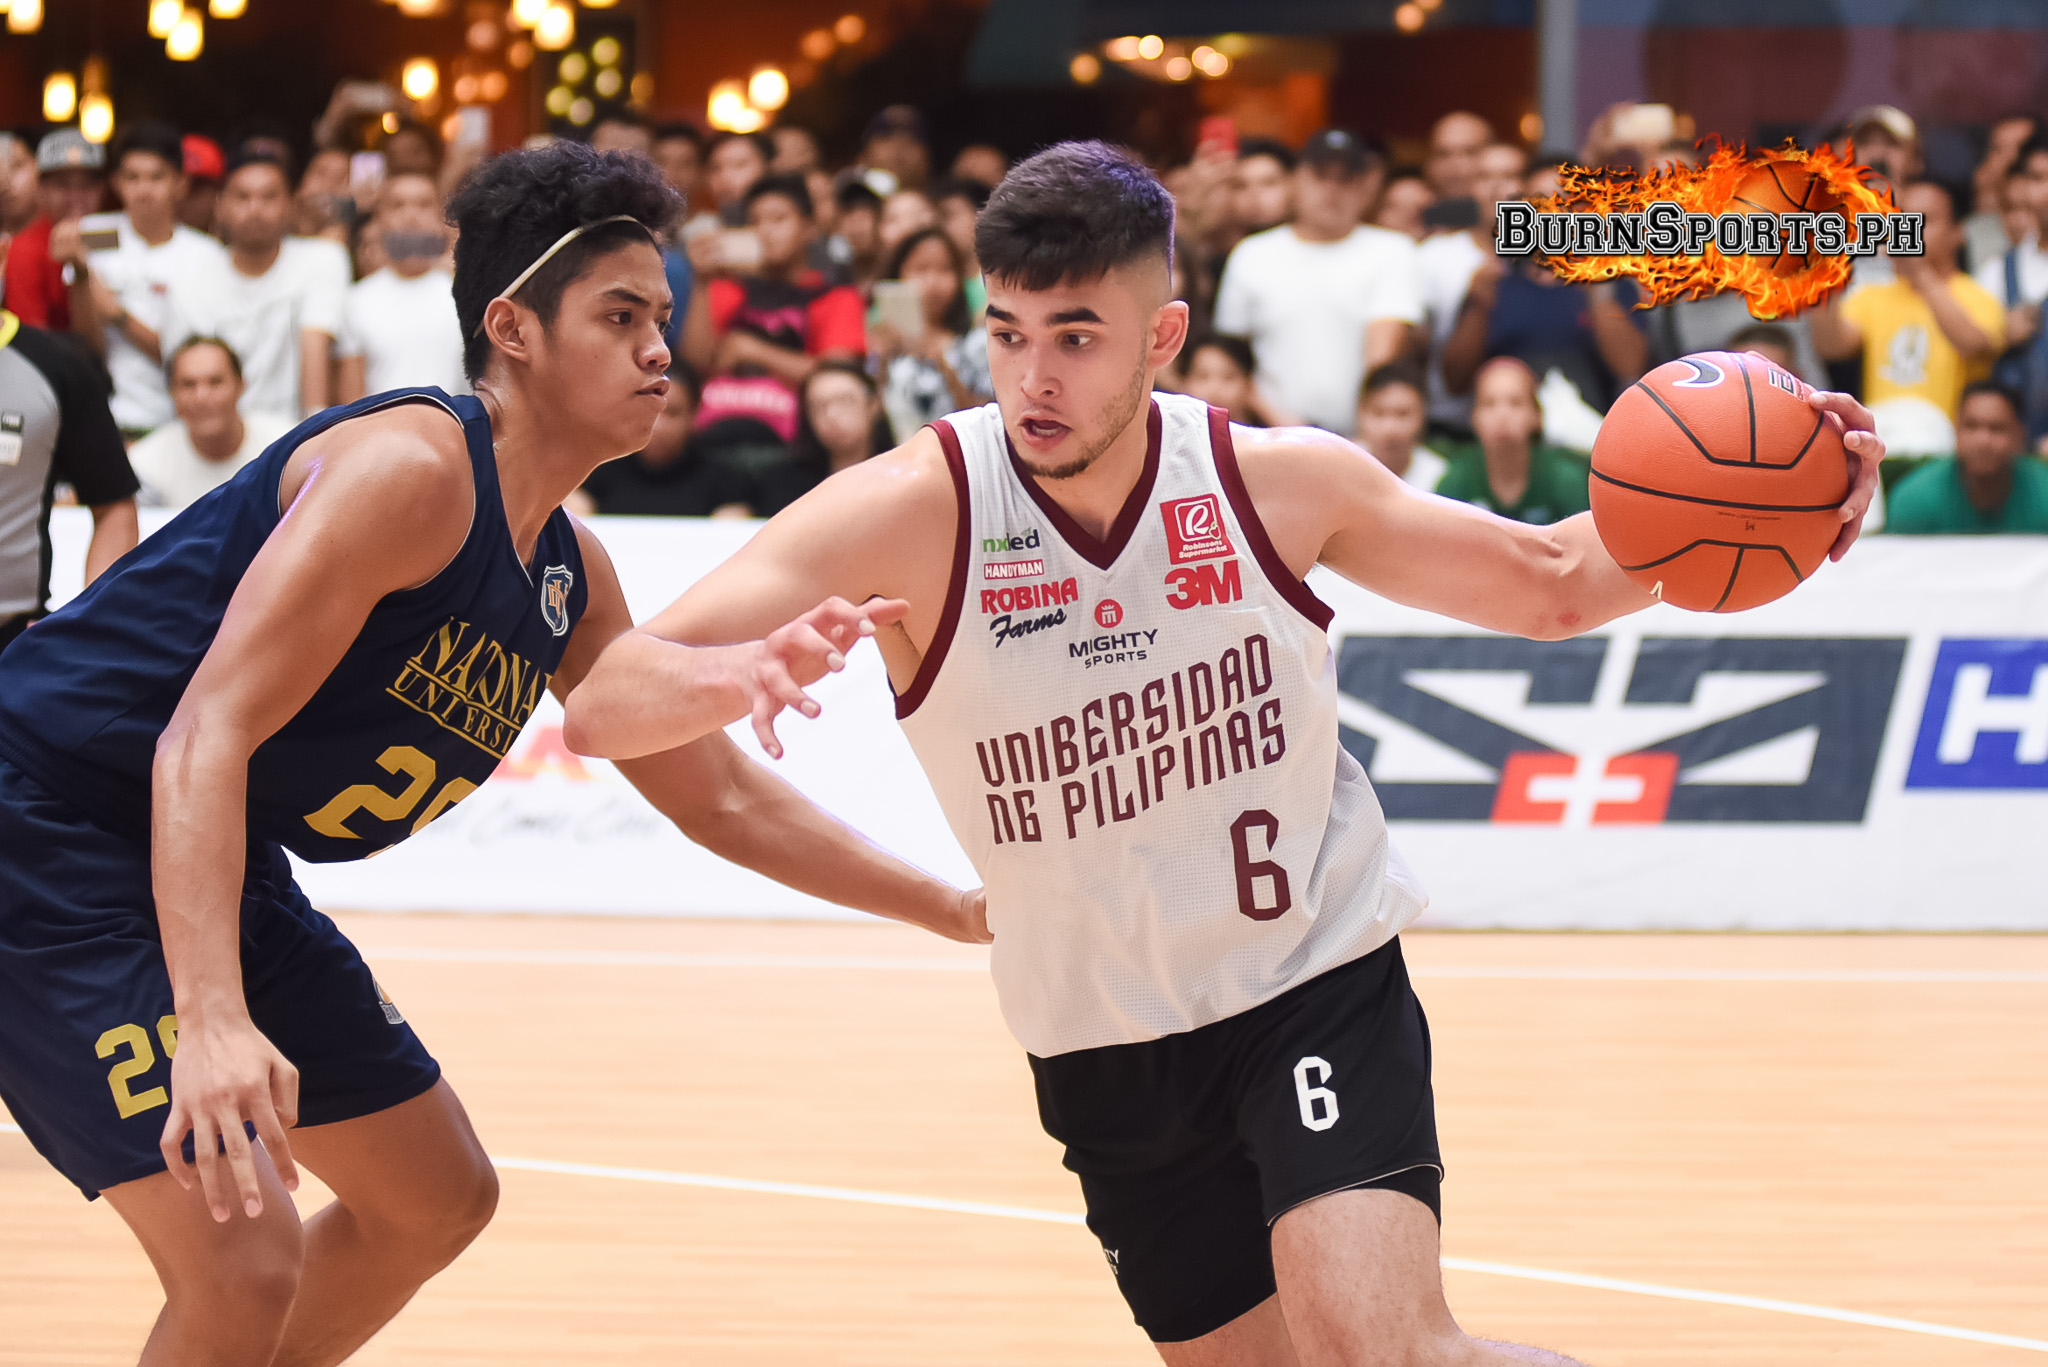 UAAP Season 81 3x3 tournament tips off this weekend